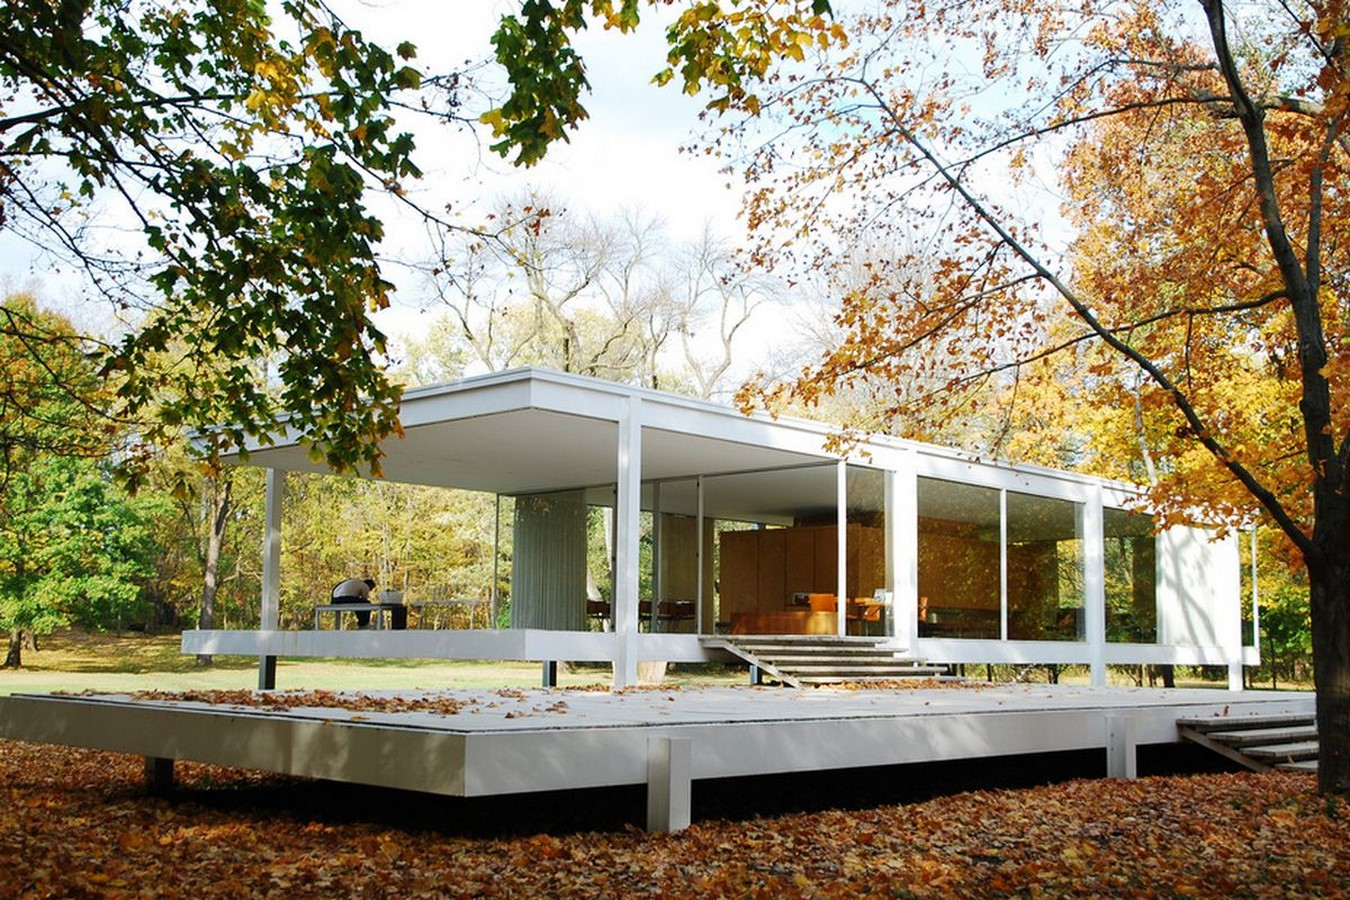 Farnsworth House, Illinois, Chicago, USA by Mies Van der Rohe - Sheet2